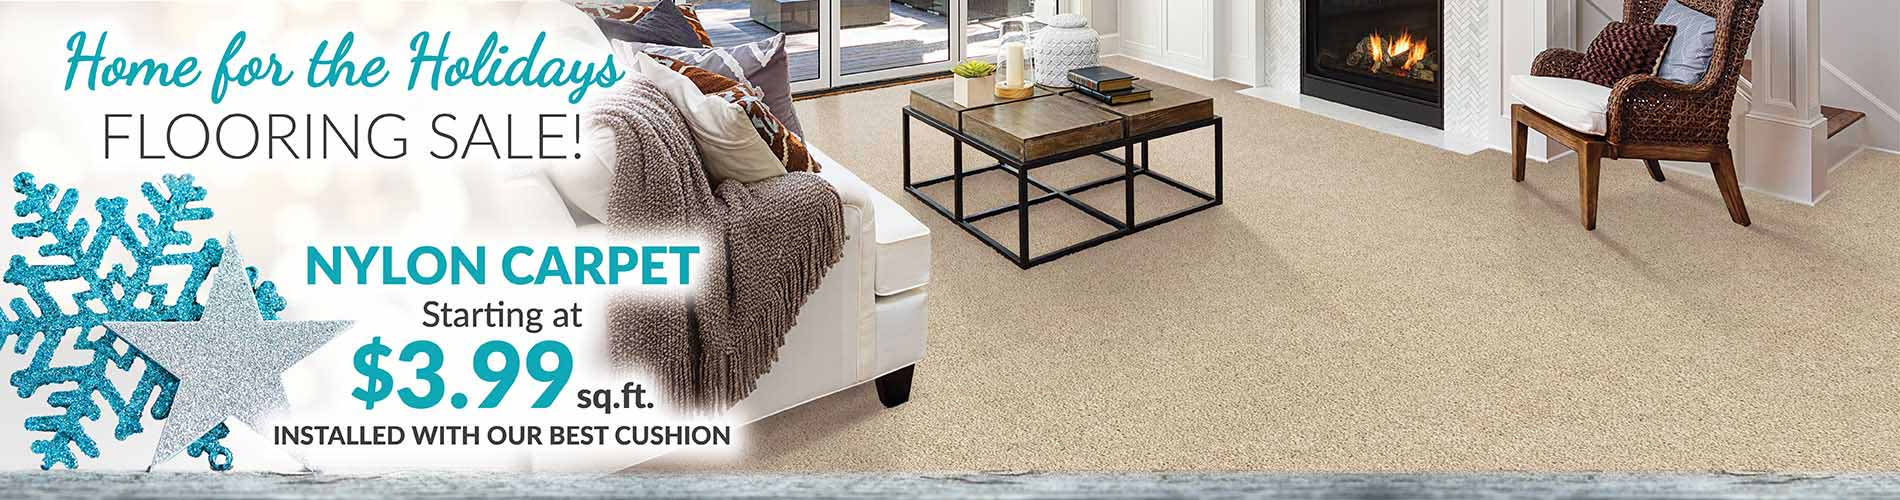 Nylon Carpet starting at $3.99 sq.ft. during our Home for the Holidays Flooring Sale at Bell Carpet & Floors in Wichita, KS